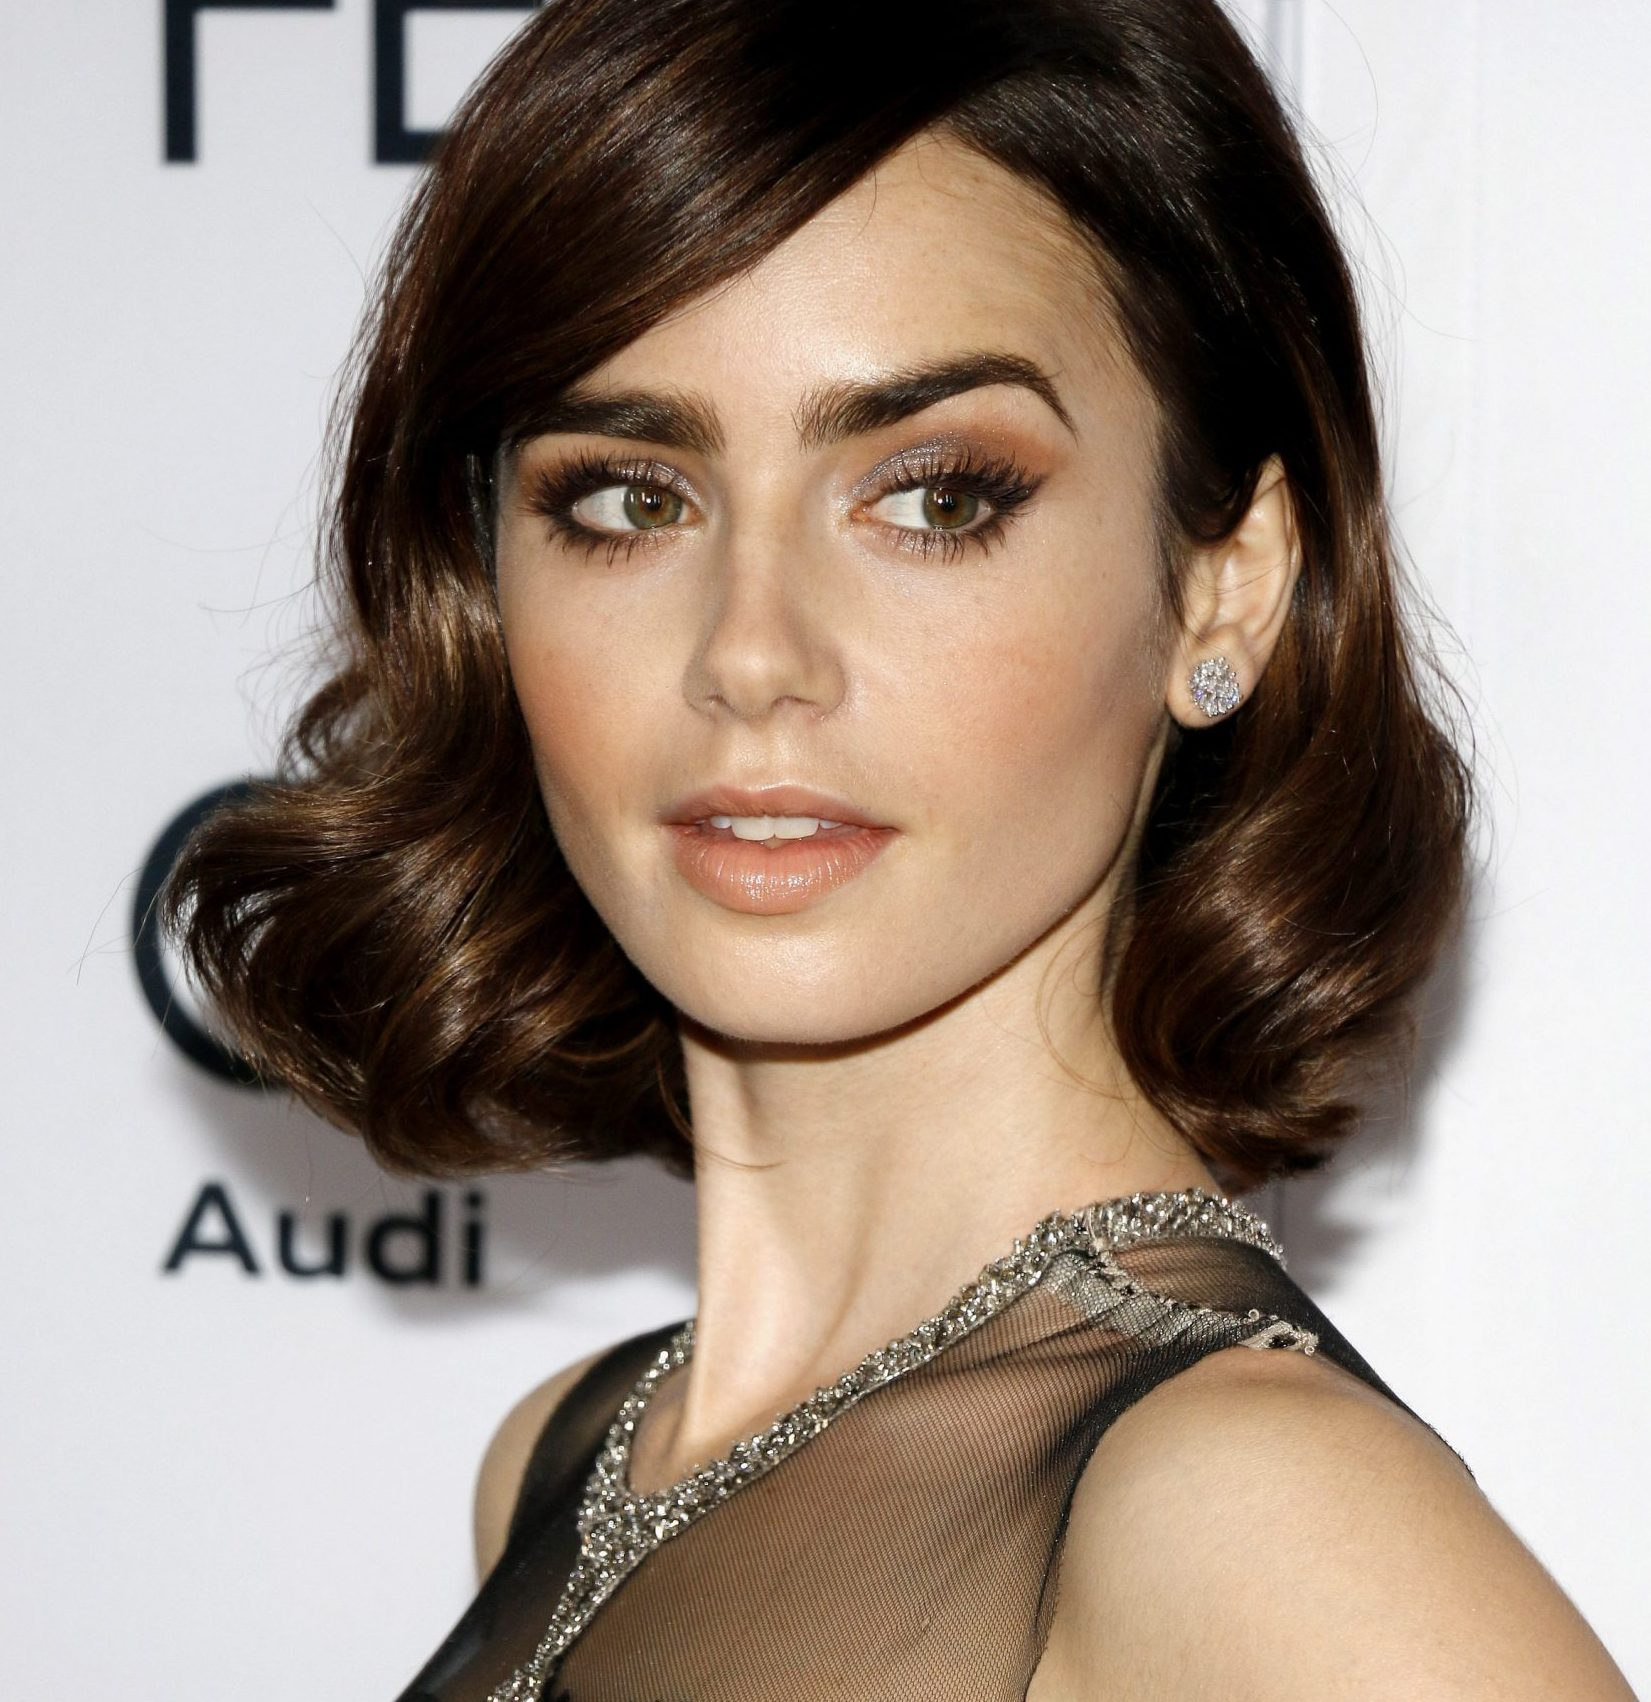 Lily Collins smiles at a red carpet event.